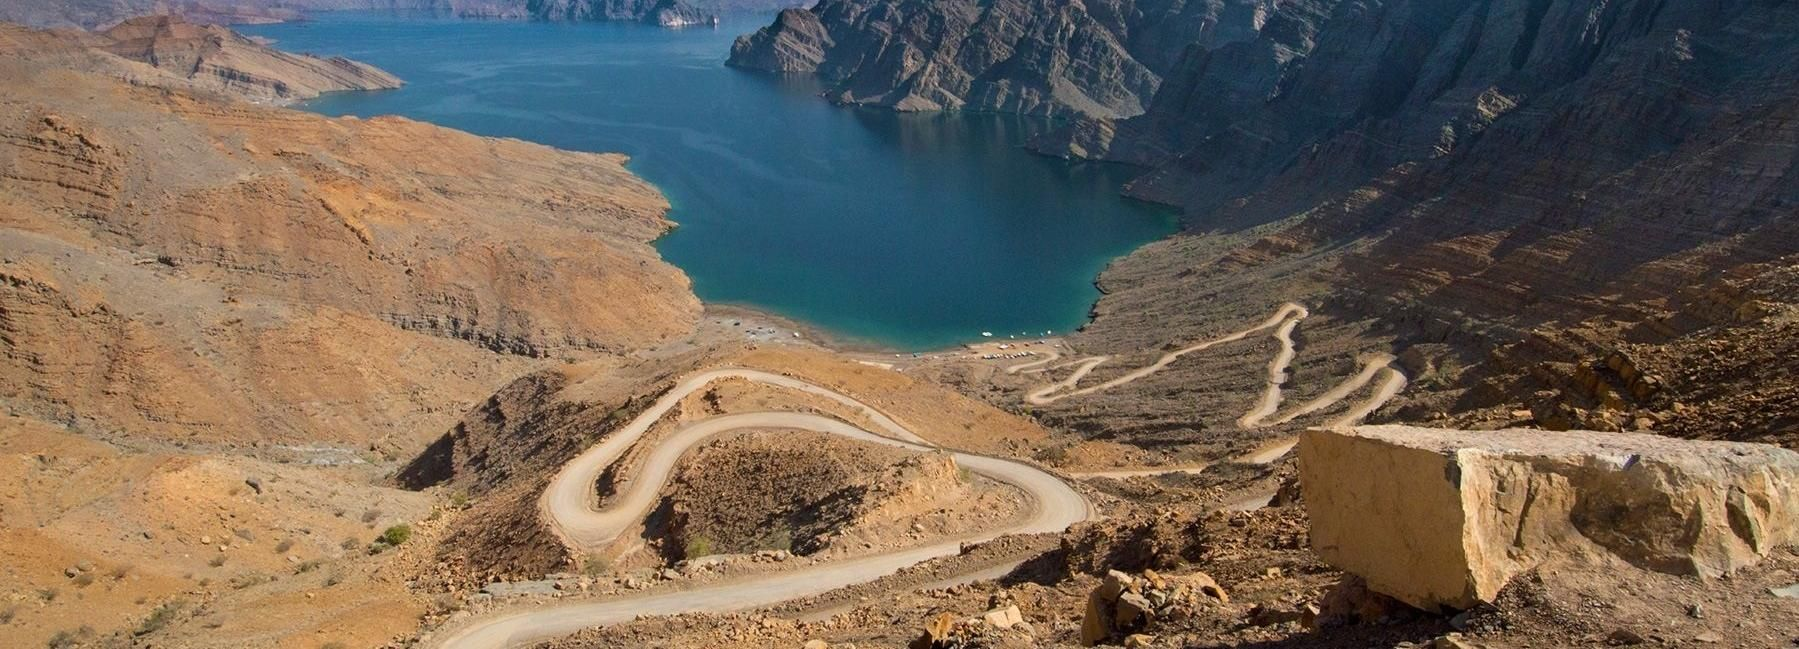 From Khasab: Jebel Harim and Gulf of Oman Private Tour